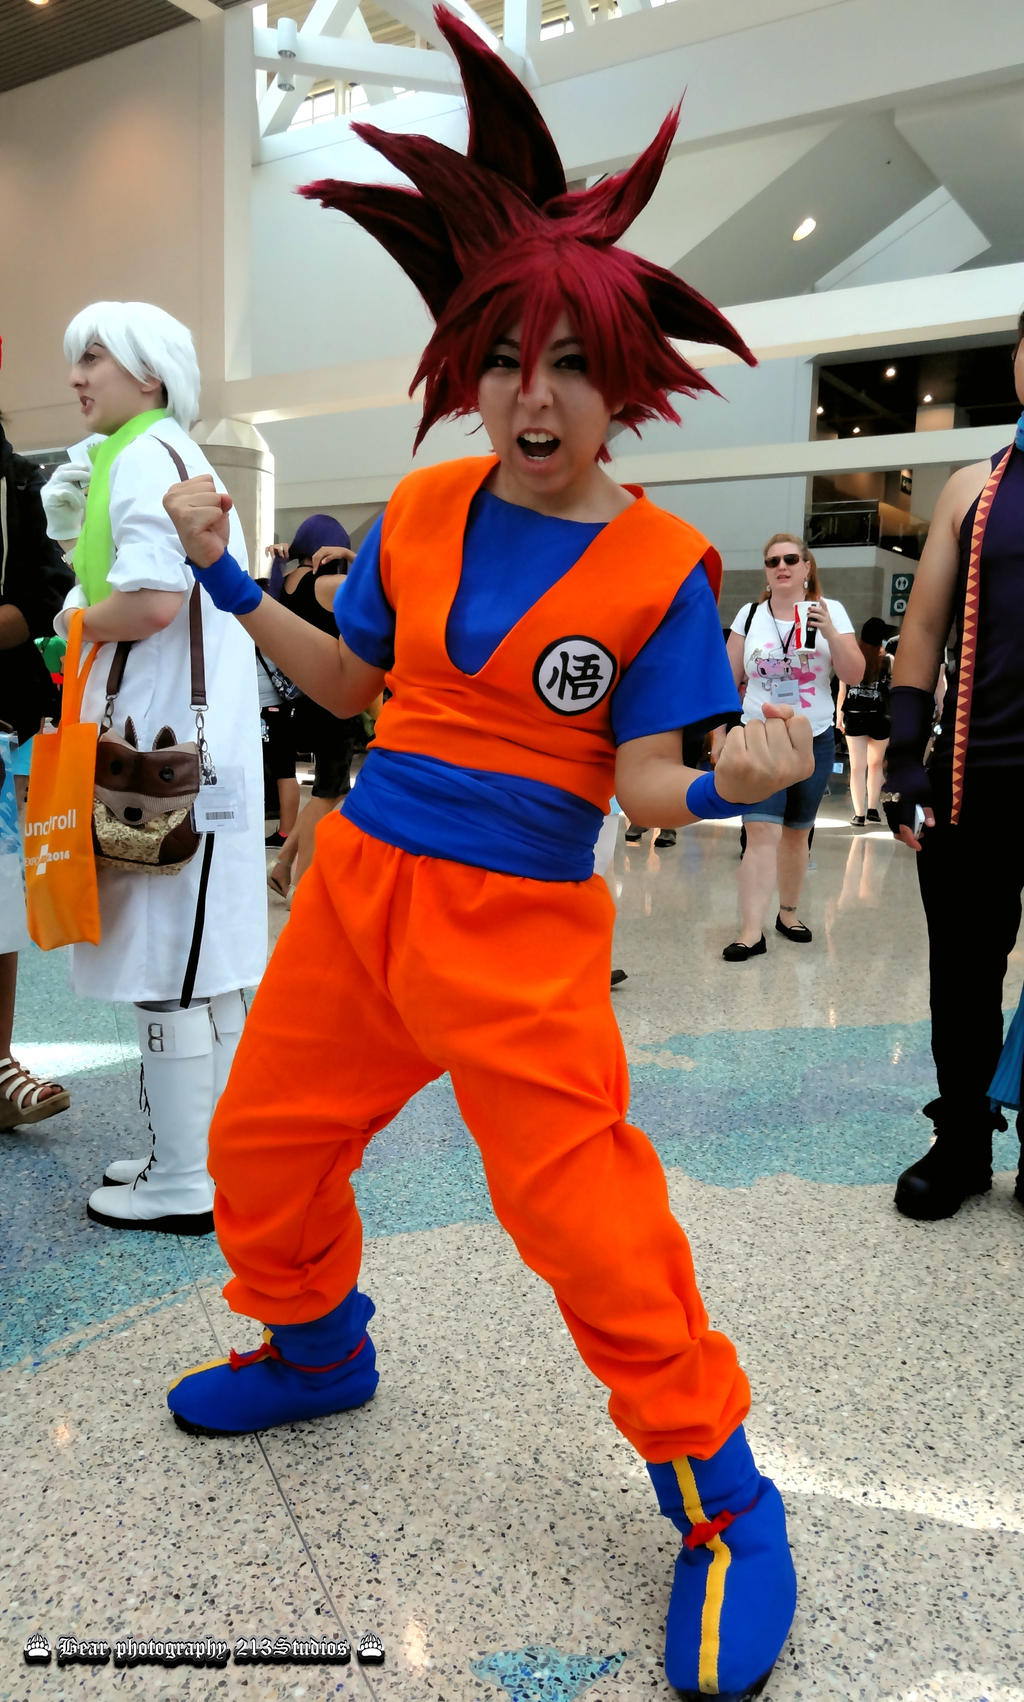 dbz speed dating Dragon ball z: resurrection f (movie) | funimation 7:00 pm flca florida cosplay community group photo 7:00 pm geek speed dating: hetero session 7:00 pm religion in.